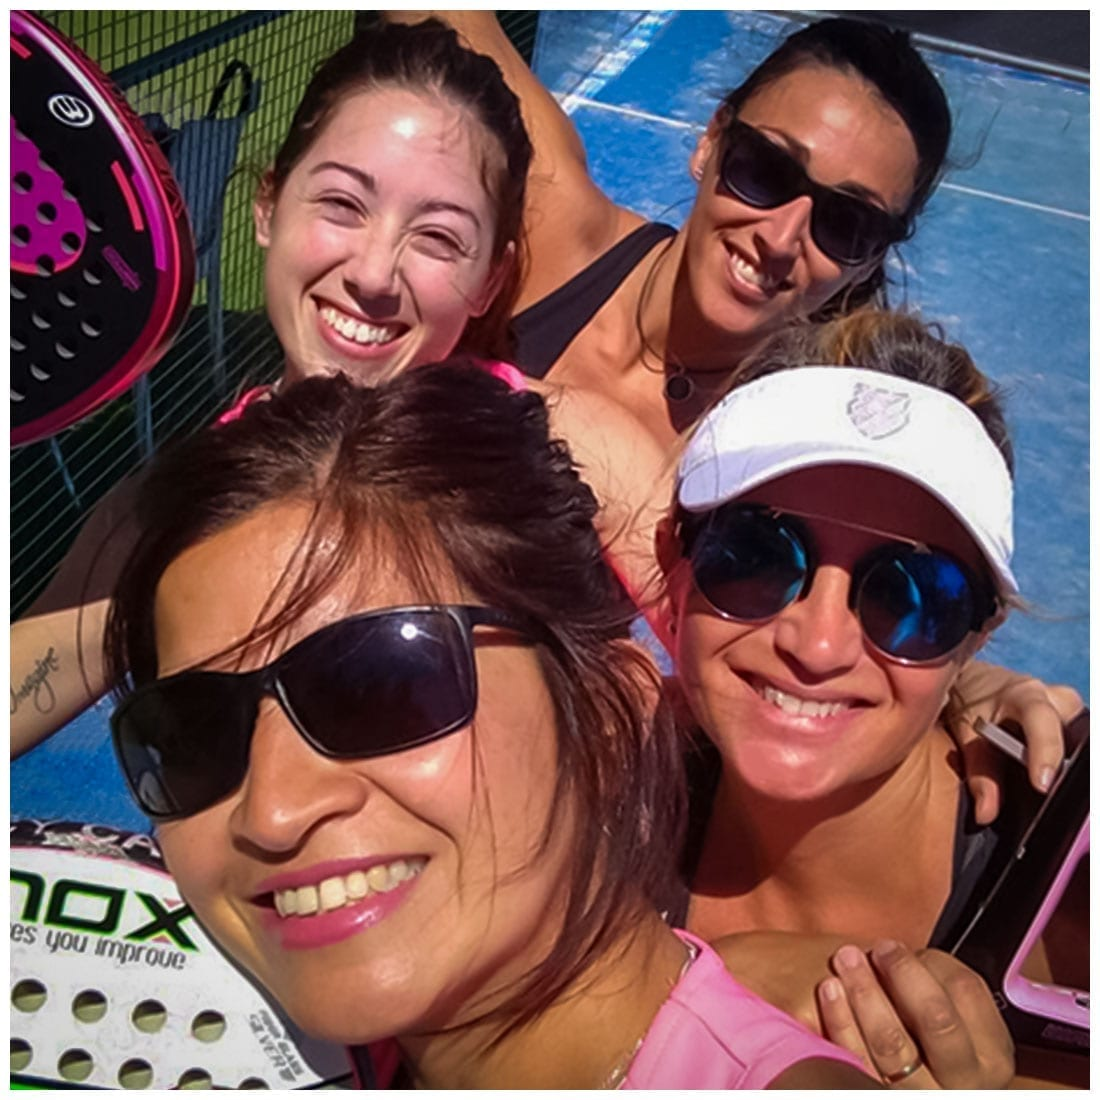 Beautifull Padel Girls. Post Padel, Paddle, Pádel, POP Tennis, Rules, and Regulations. Your Online Padel Shop, Blog Page with Posts